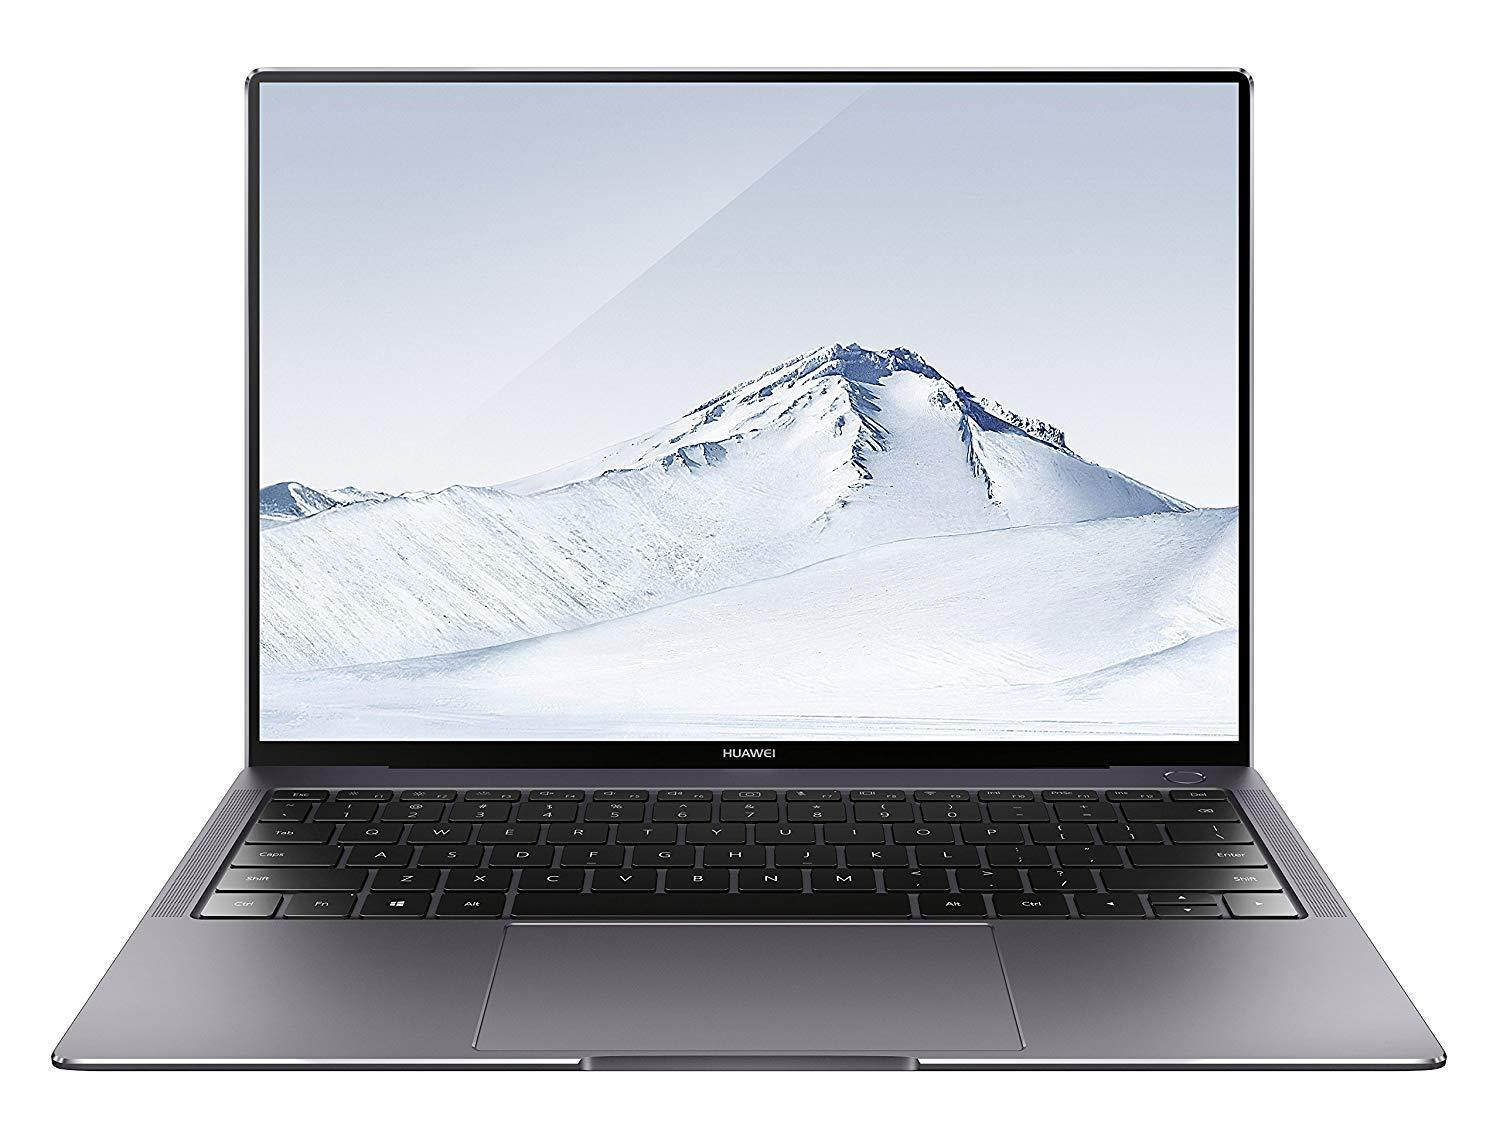 Image du PC portable Huawei MateBook X Pro Core i7, 8 Go, 512 Go - Gris sideral